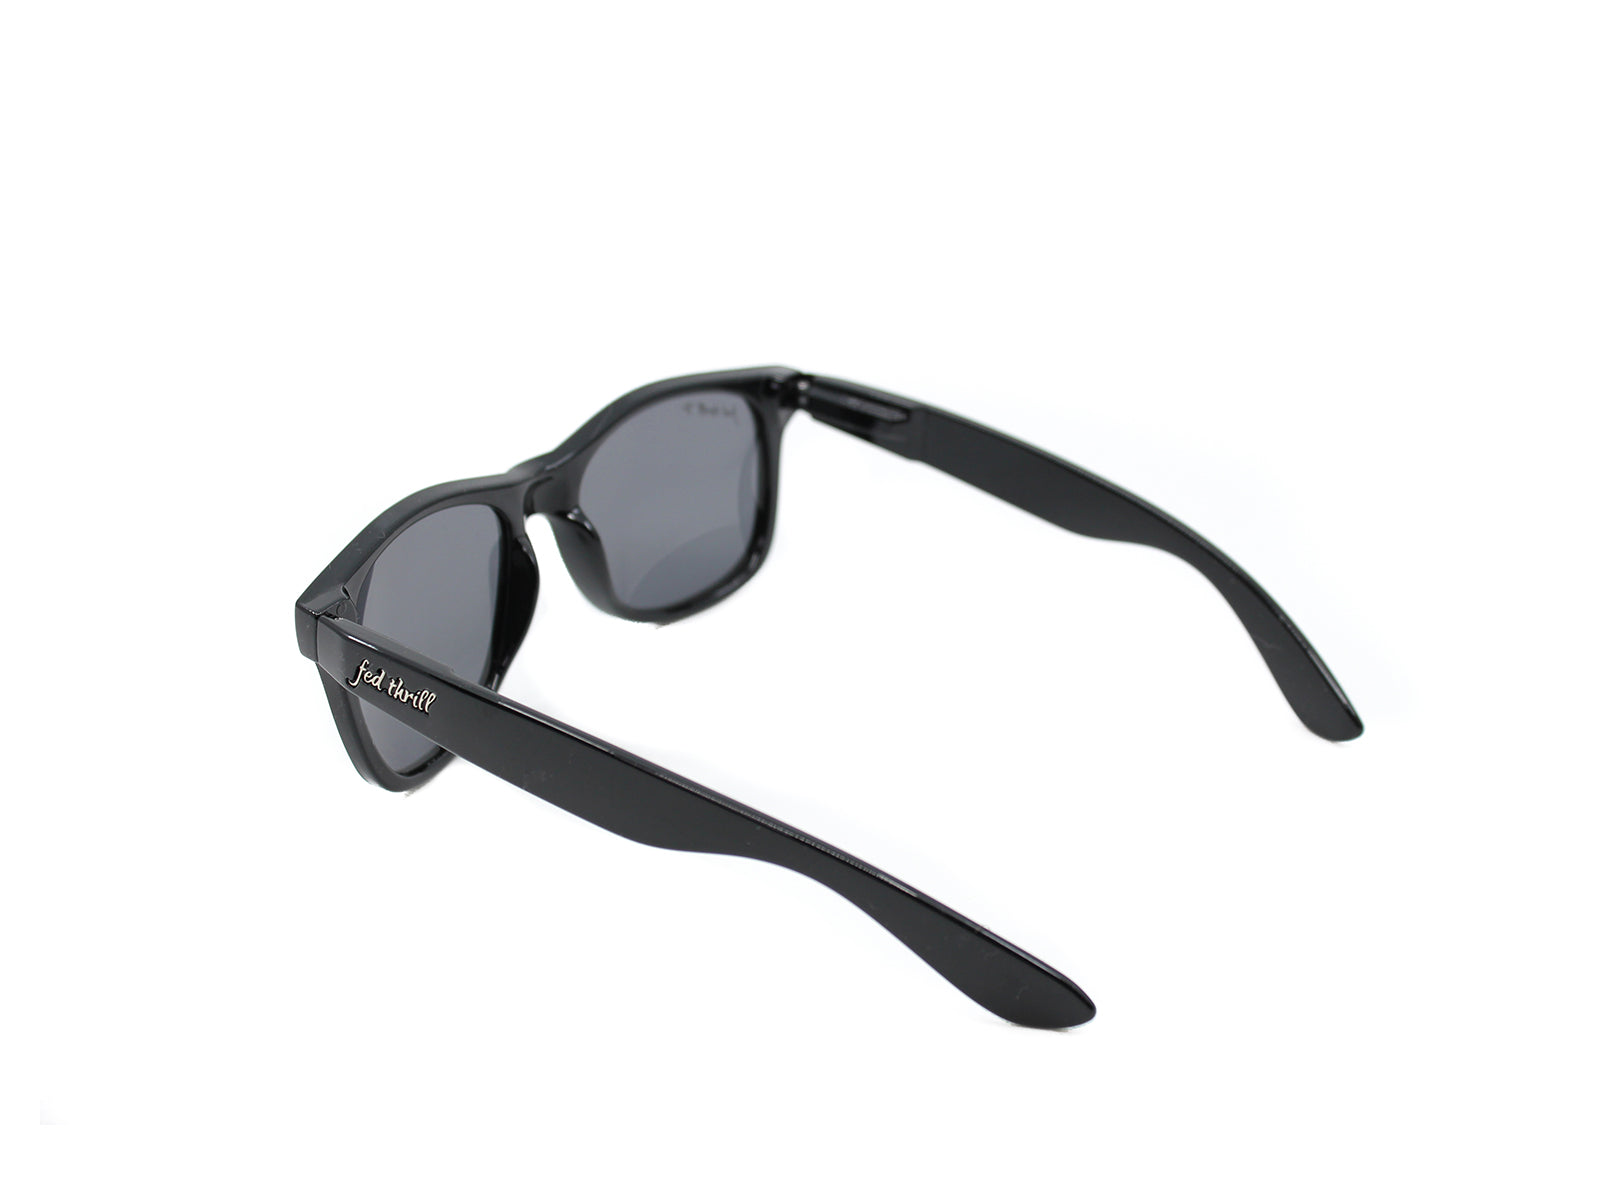 Fultons - Hopkins: Glossy Black / Mirrored Sky Blue Polarized